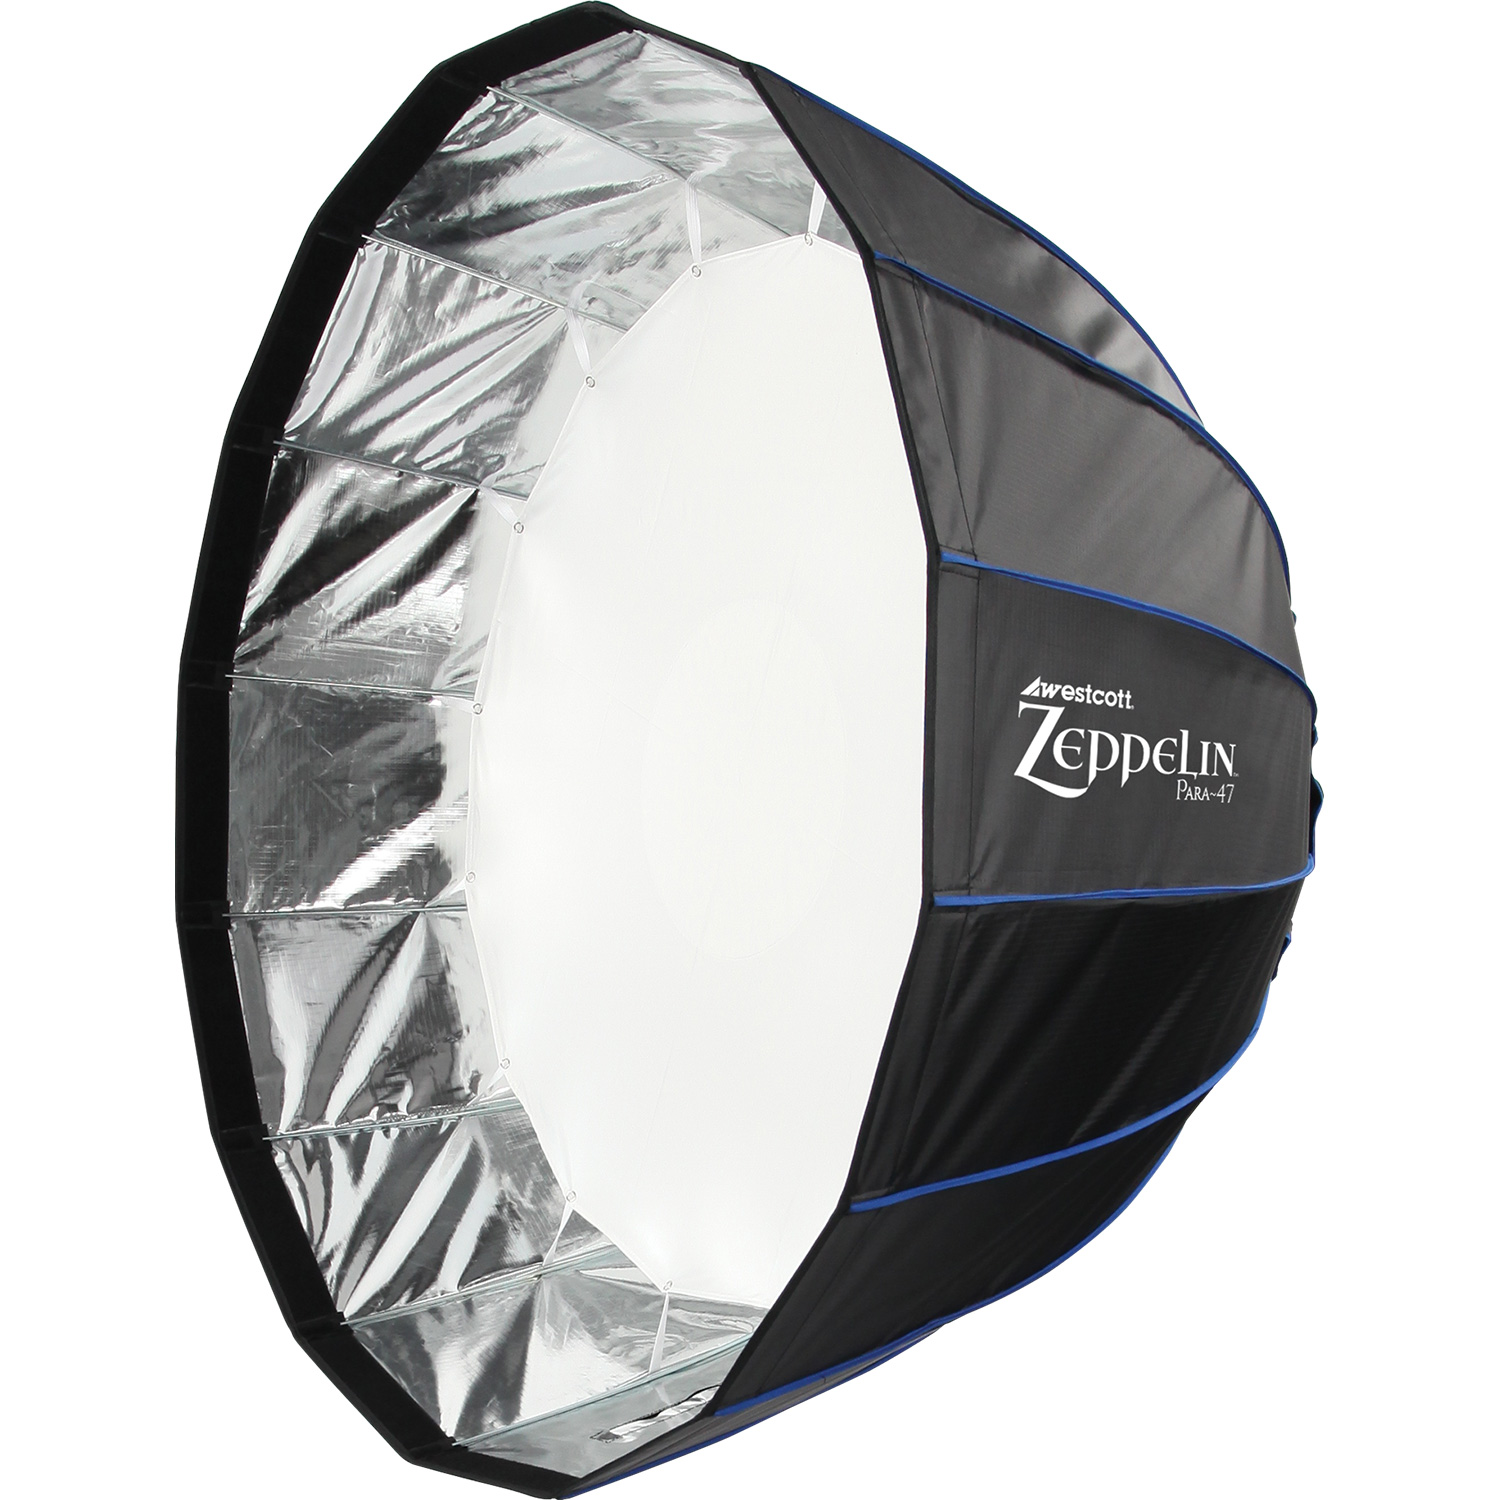 Zeppelin 47-in. Parabolic Softbox